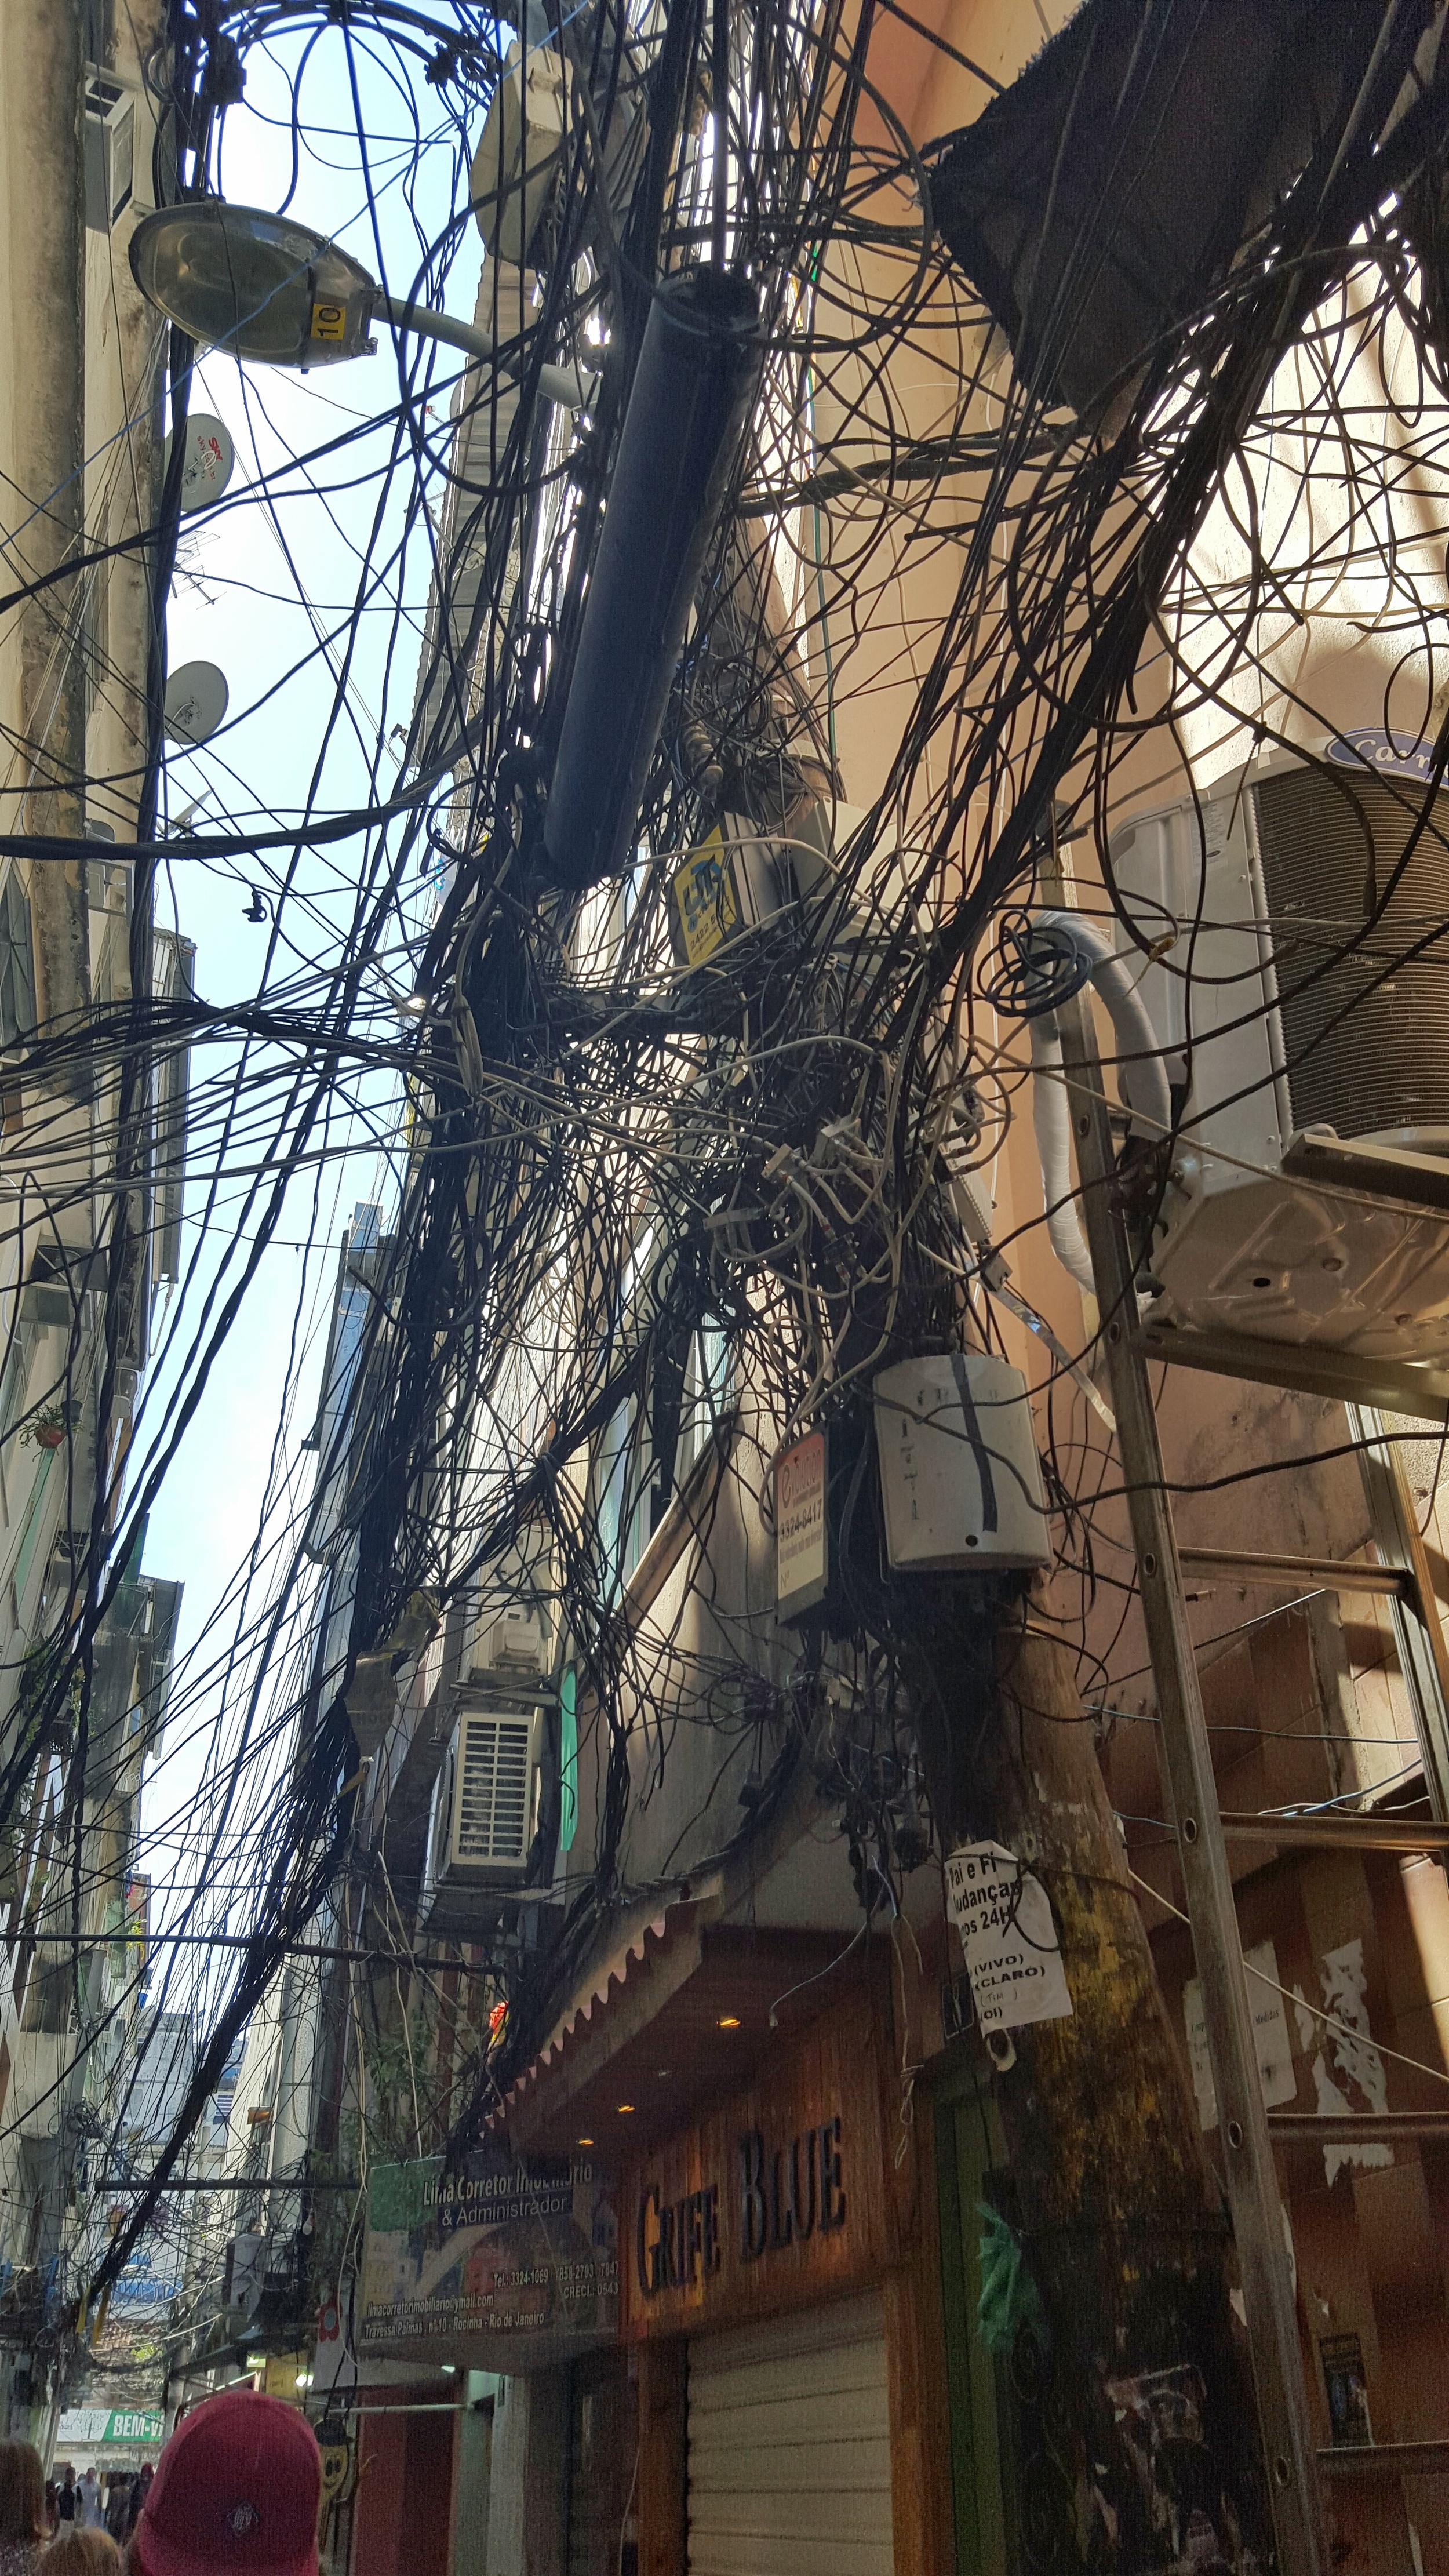 Shared electrical wires in a favela in Rio de Janeiro